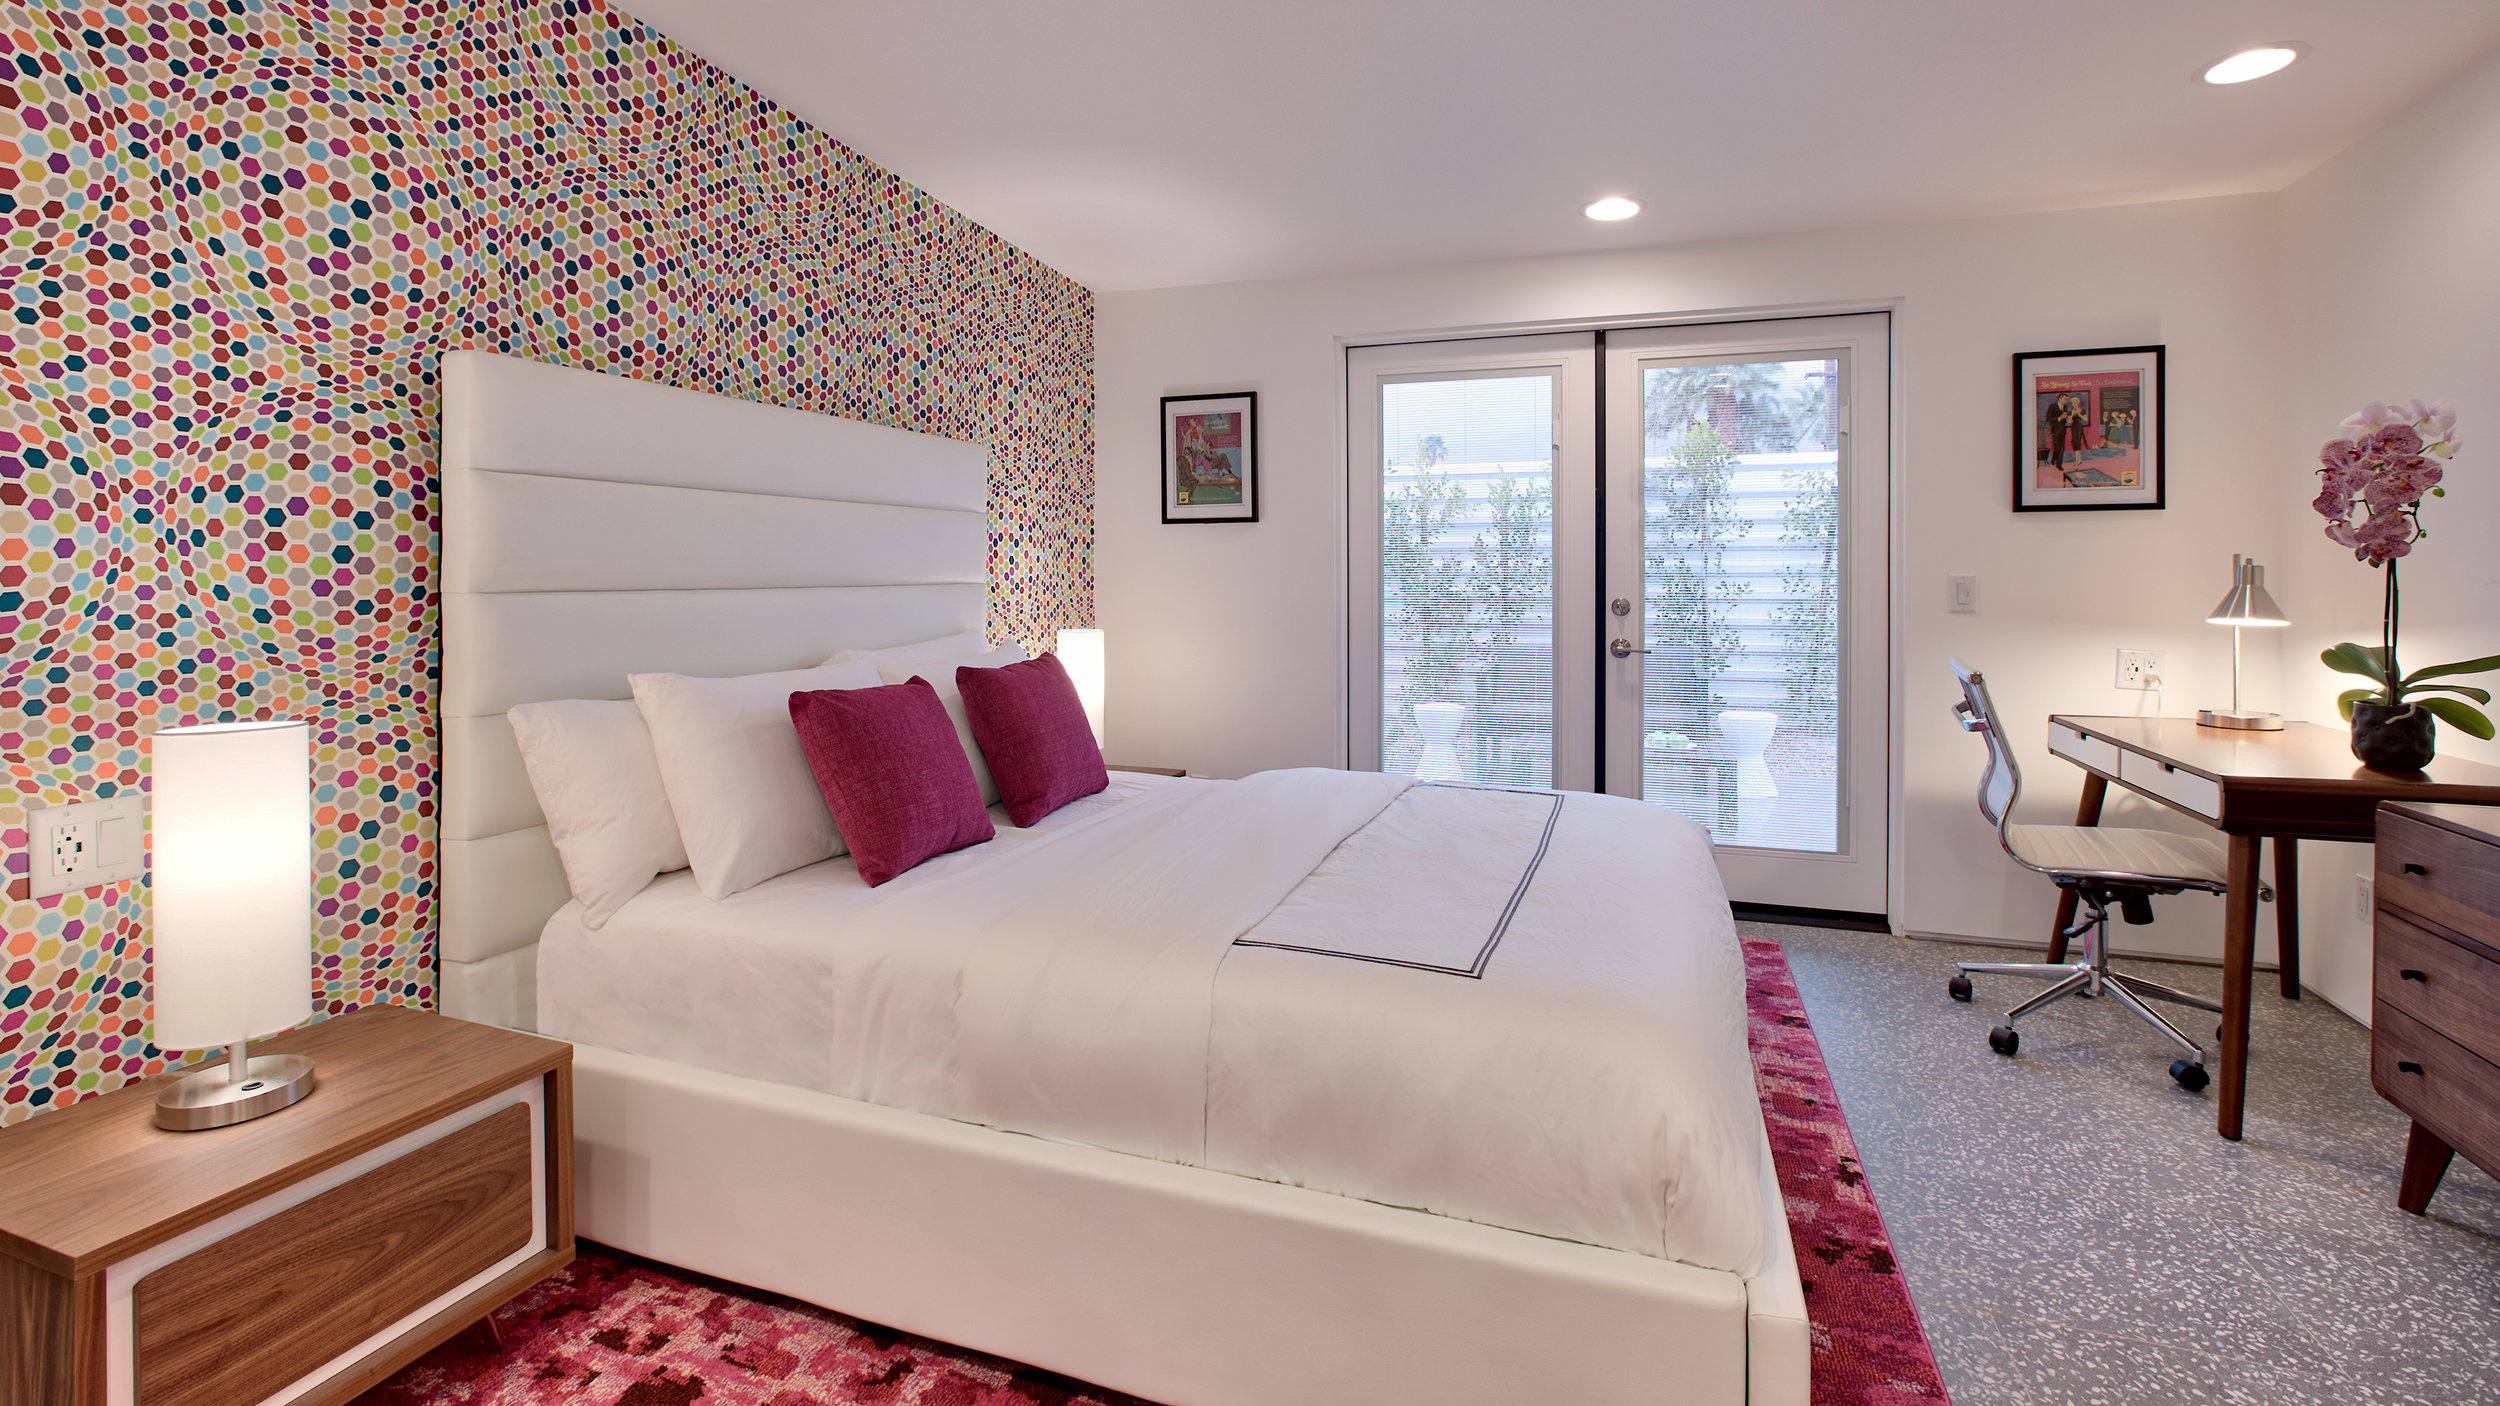 Bedroom #2: The Pink room- Queen size bed, en-suite bathroom, desk, and private outdoor patio. Fun and colorful wallpaper!